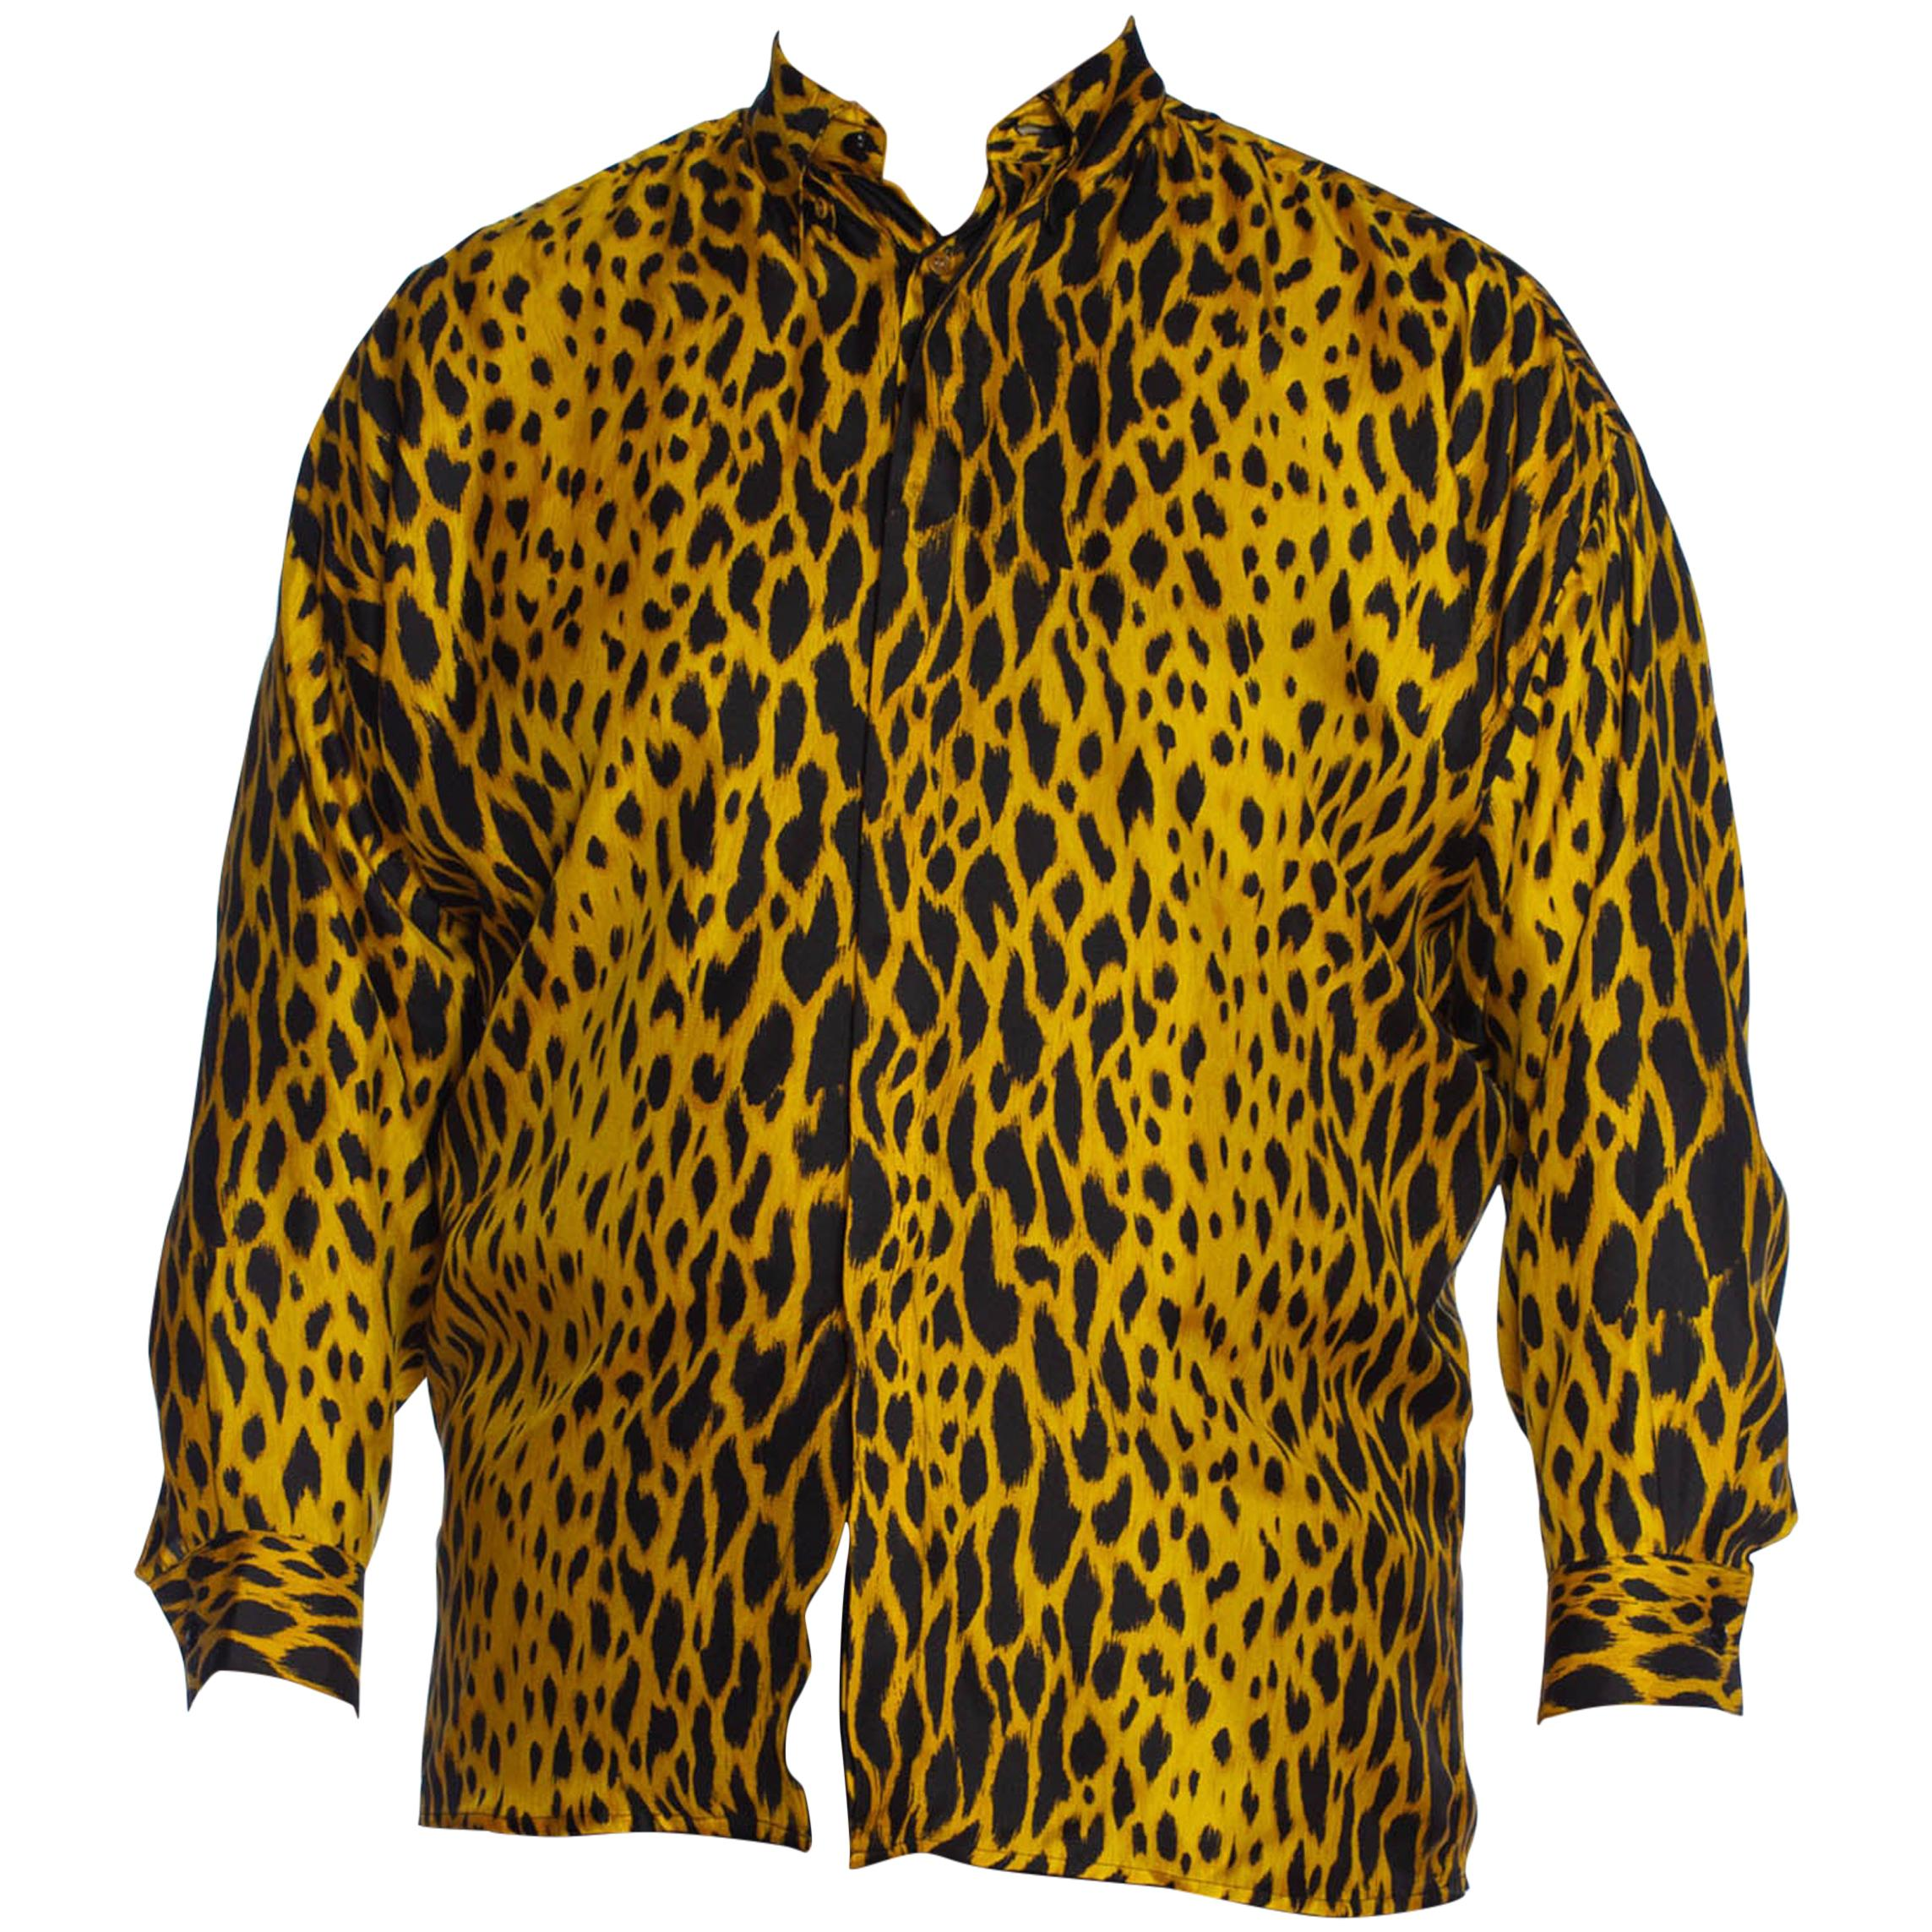 1990S GIANNI VERSACE Leopard Print Silk Twill Men's Shirt